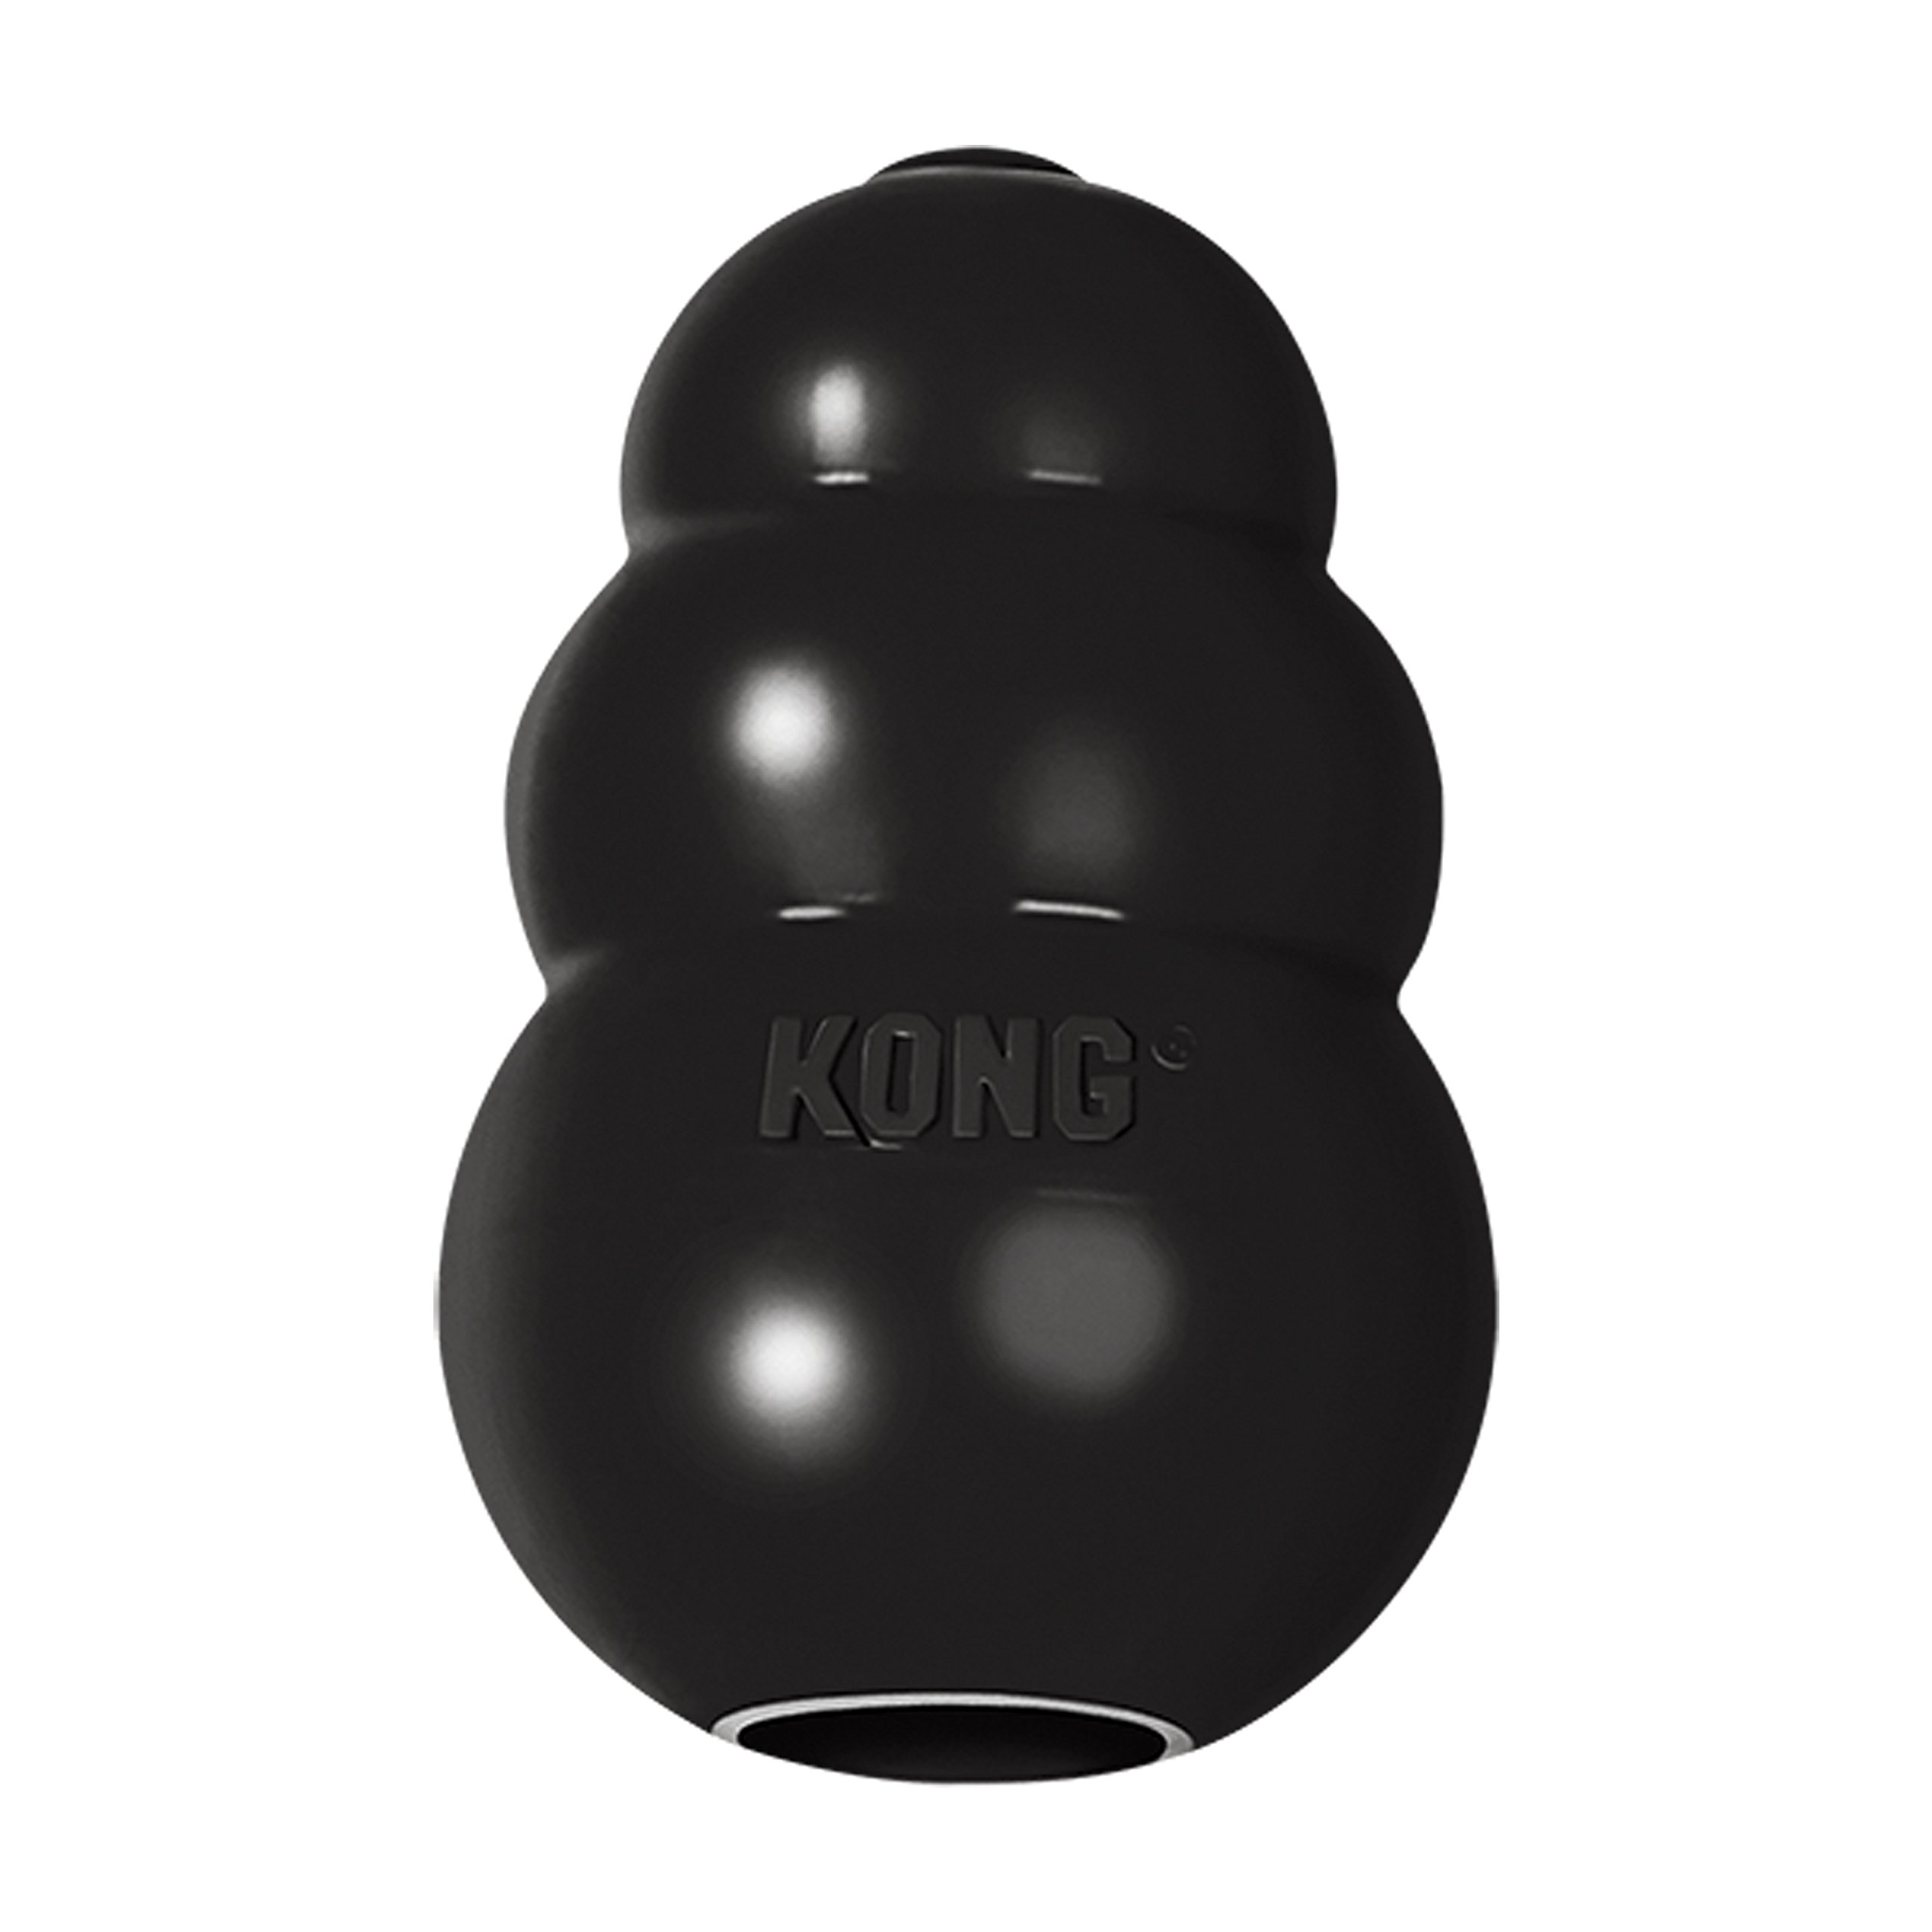 KONG Extreme Dog Toy Black Large